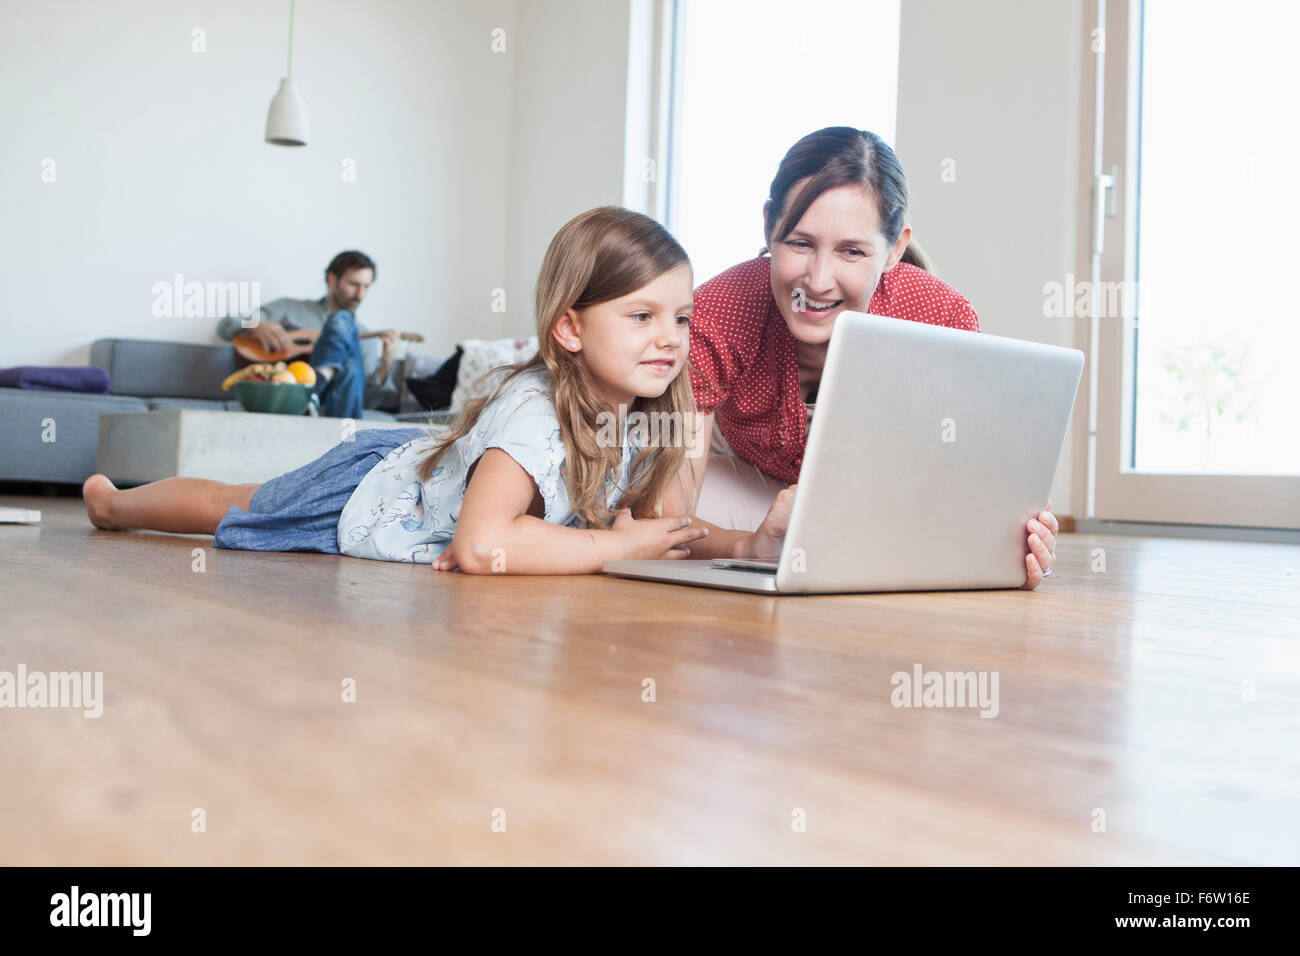 Mother and daughter lying on floor using laptop, father making music in background - Stock Image